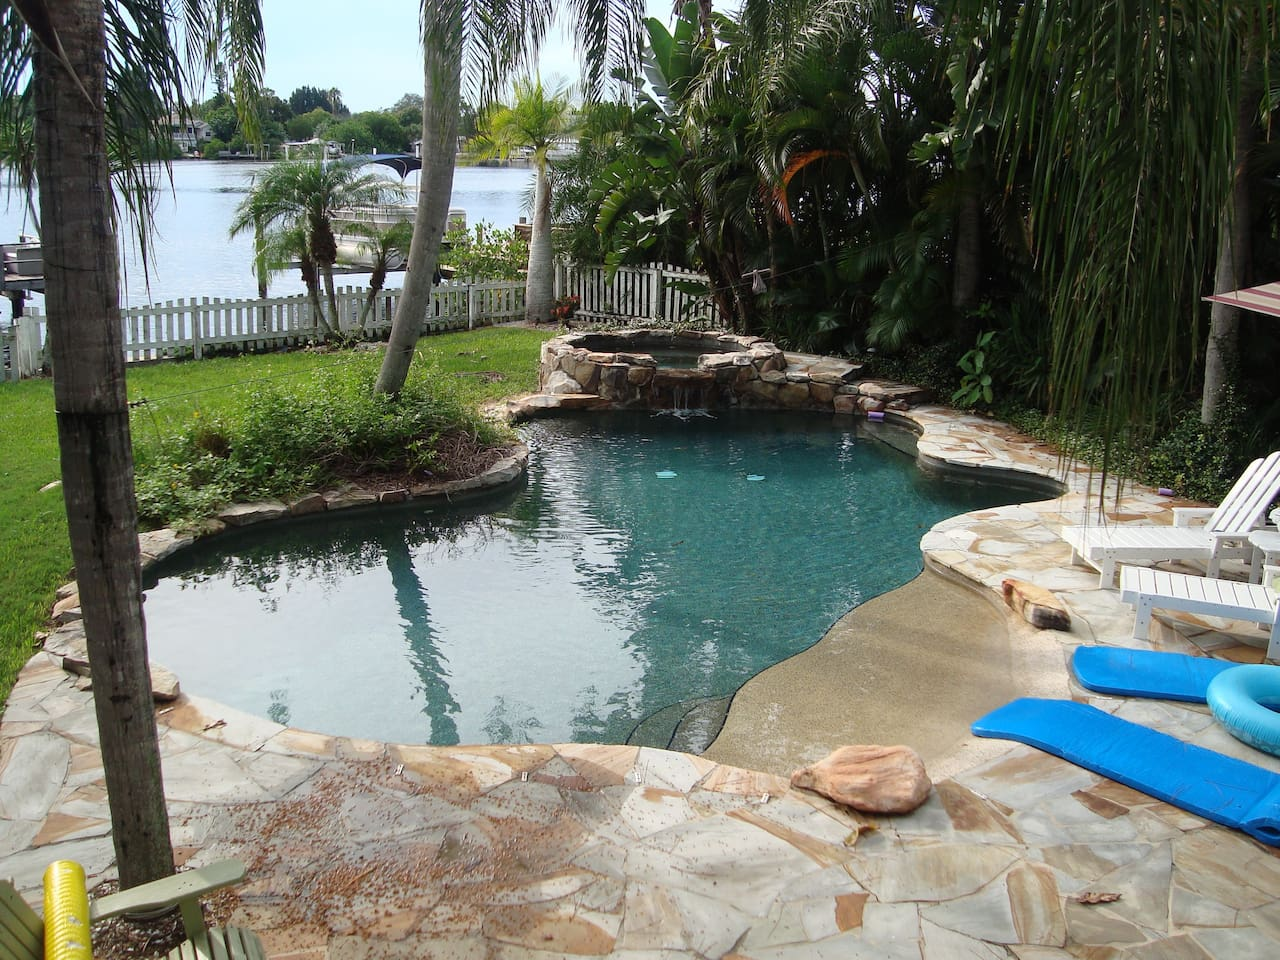 Landmark natural pond heated saltwater pool with 10 person hot tub and soothing waterfall.